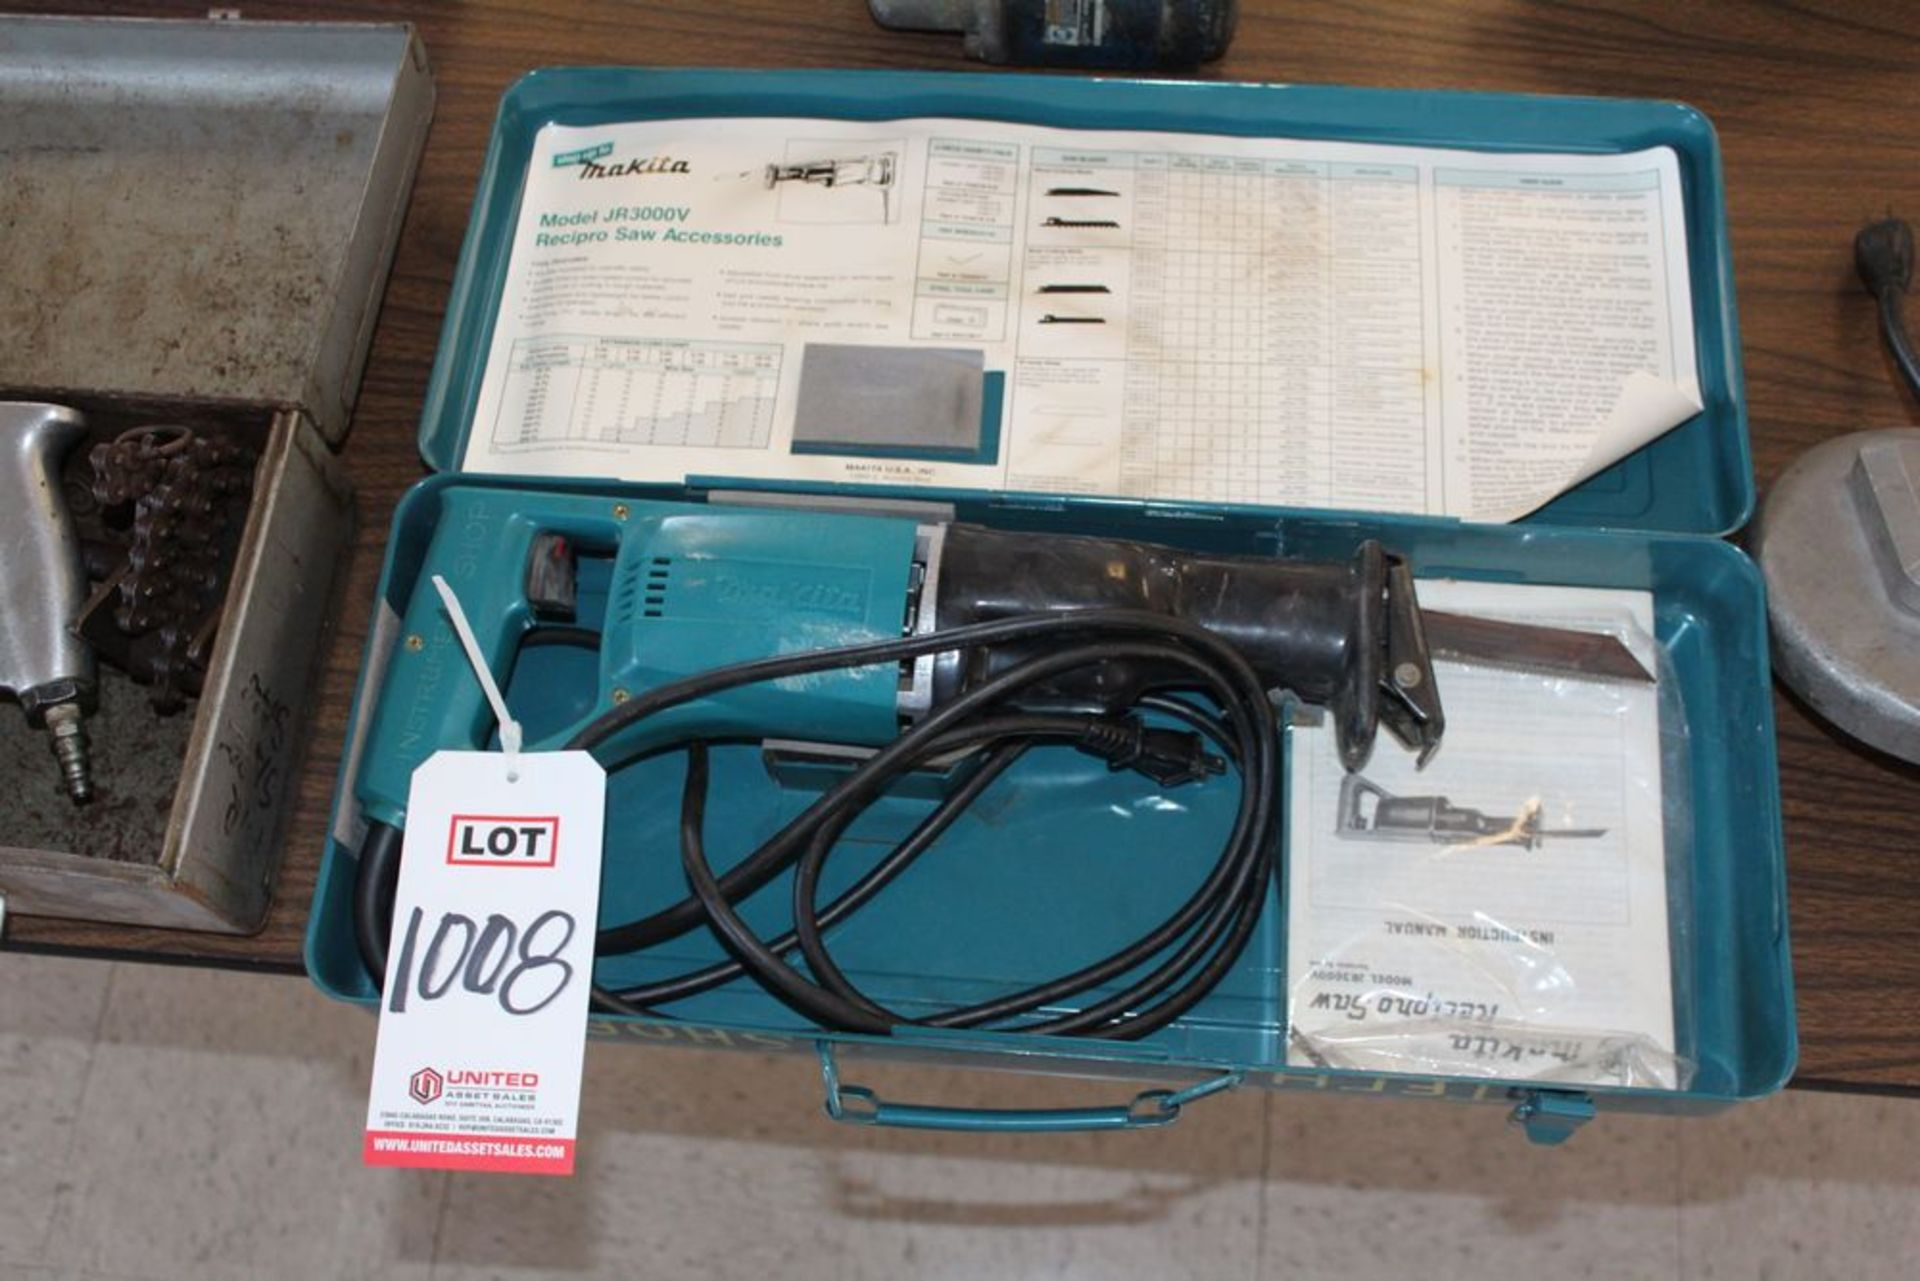 Lot 1008 - MAKITA MODEL JR300V RECIPROCATING SAW, (LUNCHROOM)